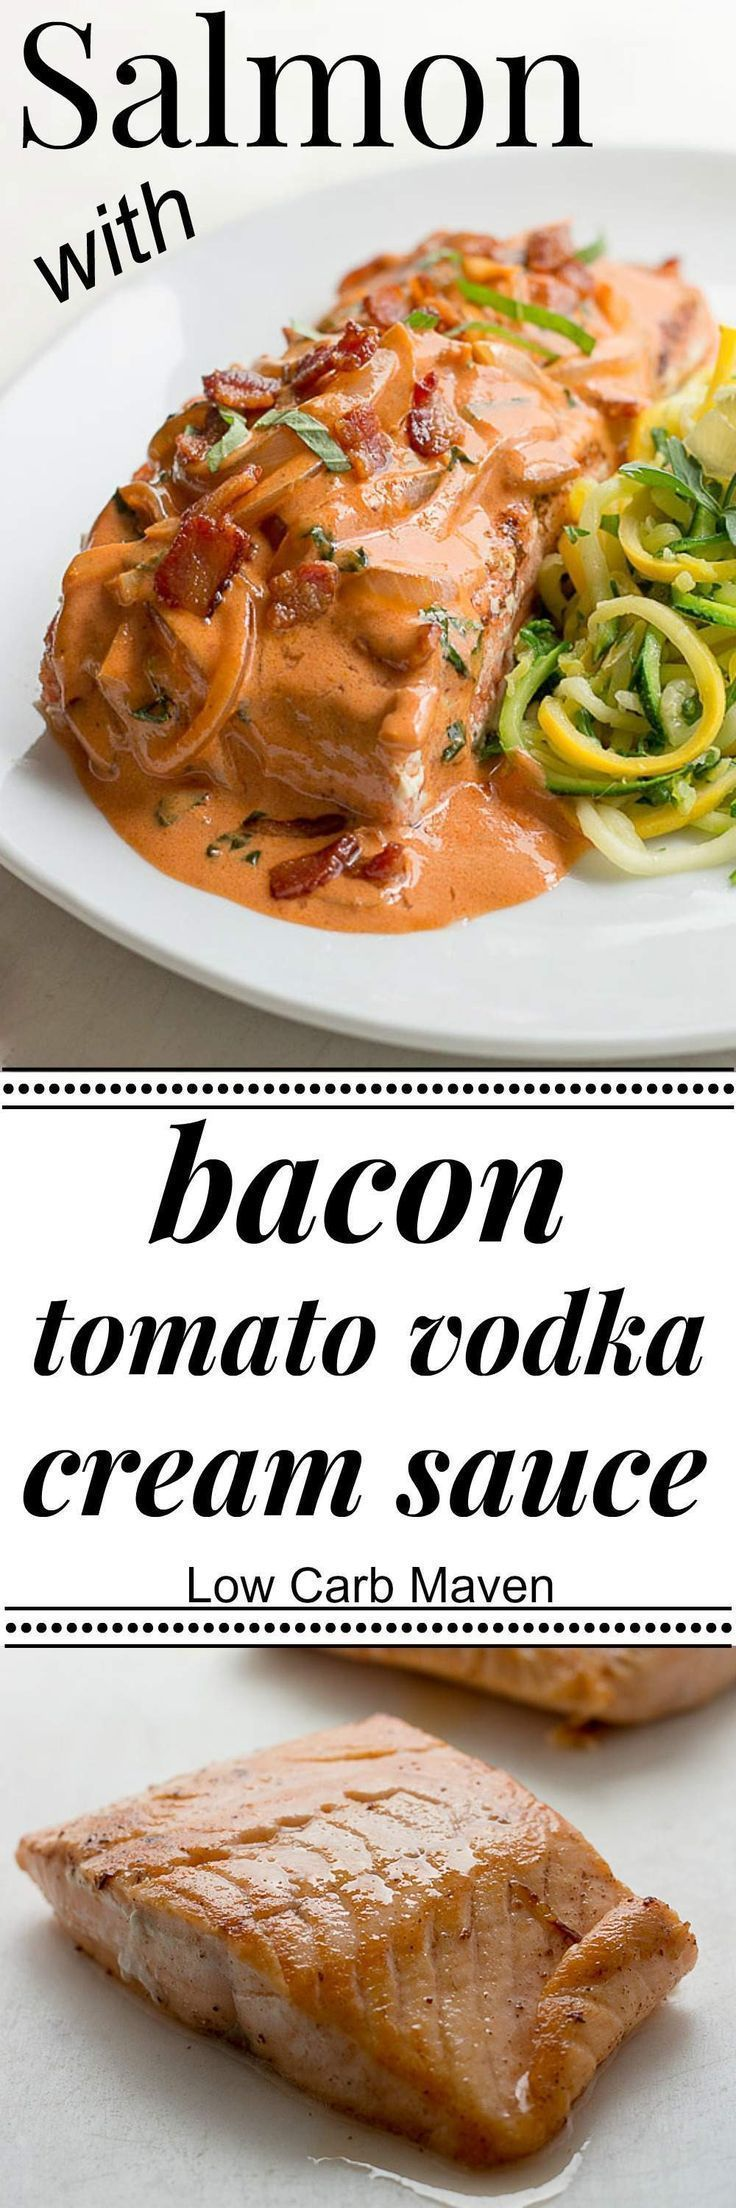 A sexy dish with a luxurious tomato vodka cream sauce featuring bacon! Ready in 20 minutes. #seafoodrecipes